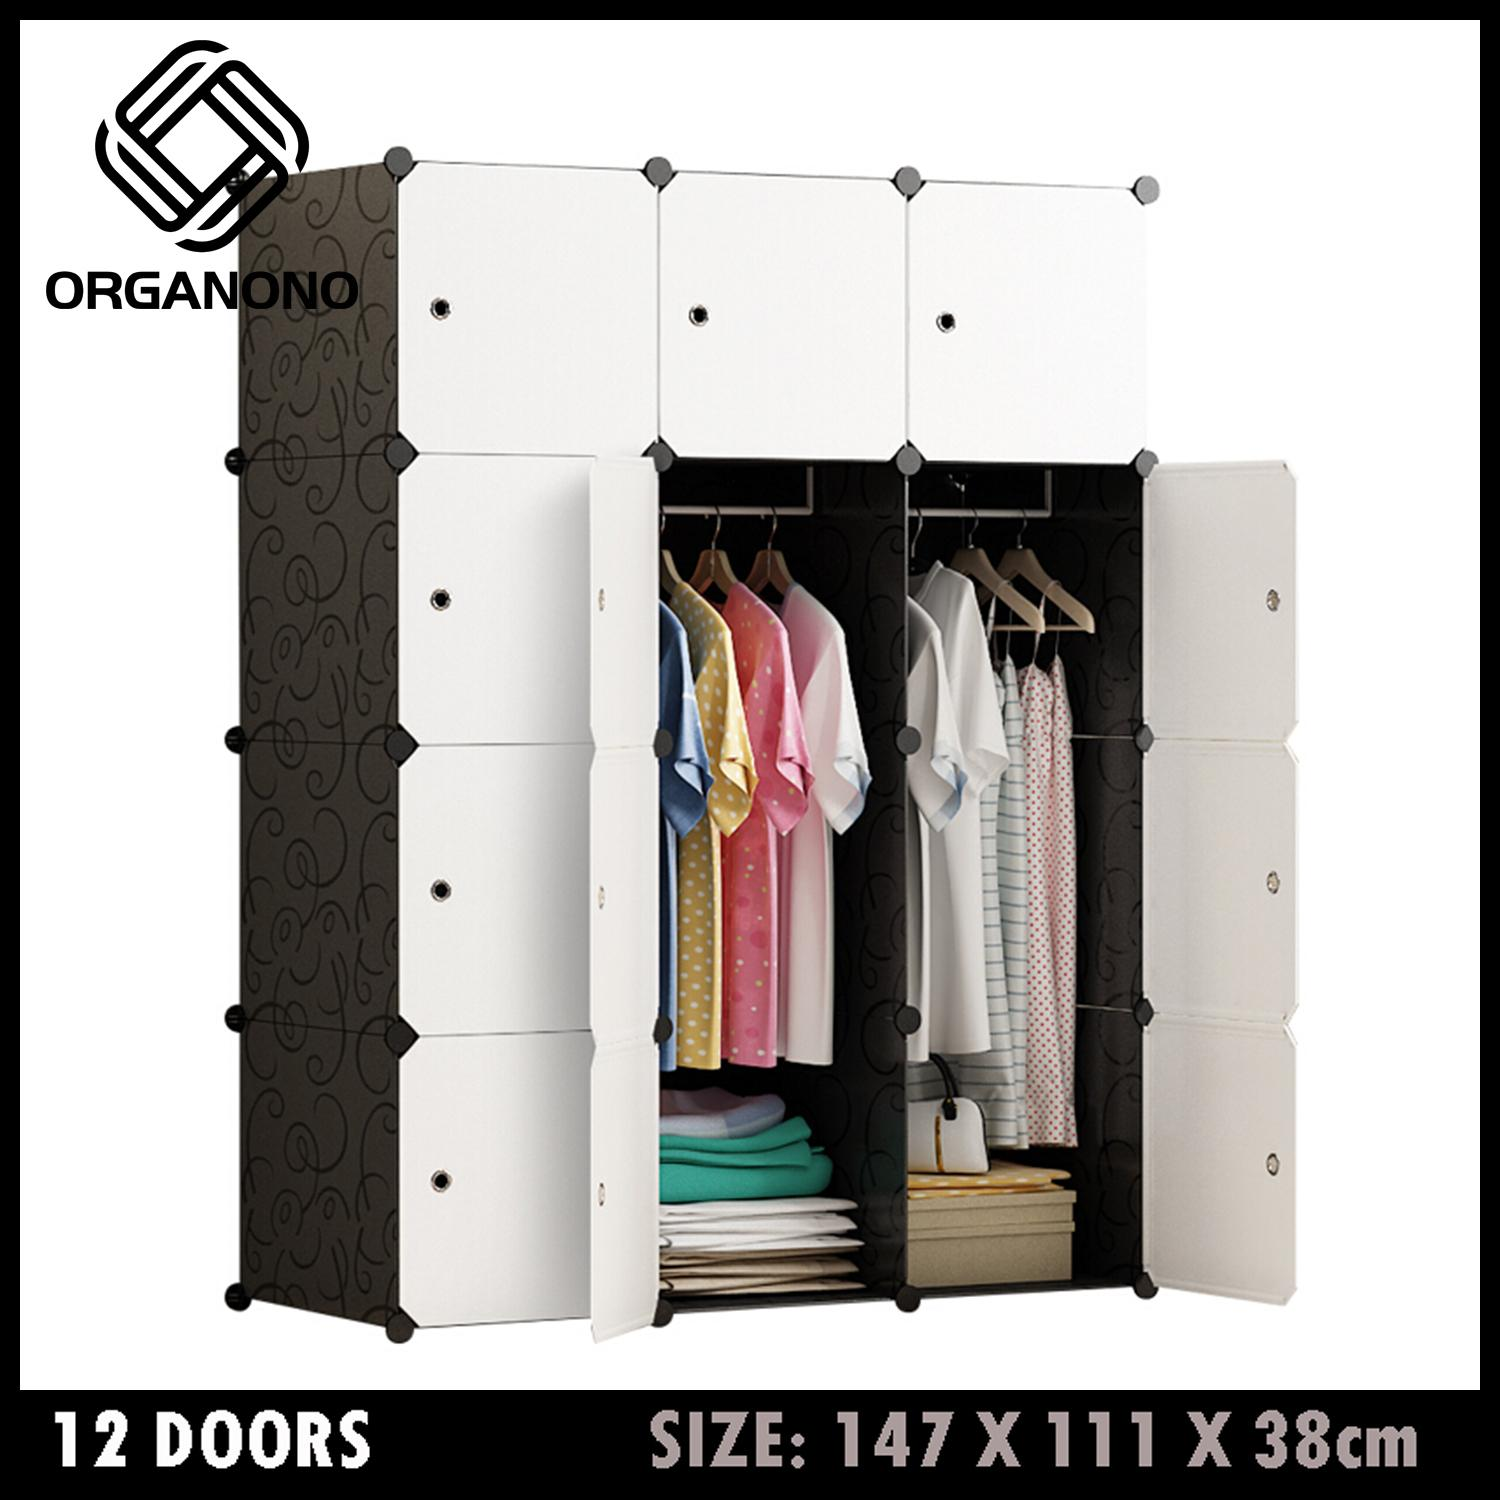 3906853bc Organono Screwless 12 Doors cubes DIY Storage Clothes Cabinet Wardrobe  Space Saver Stackable Organizer with Dress